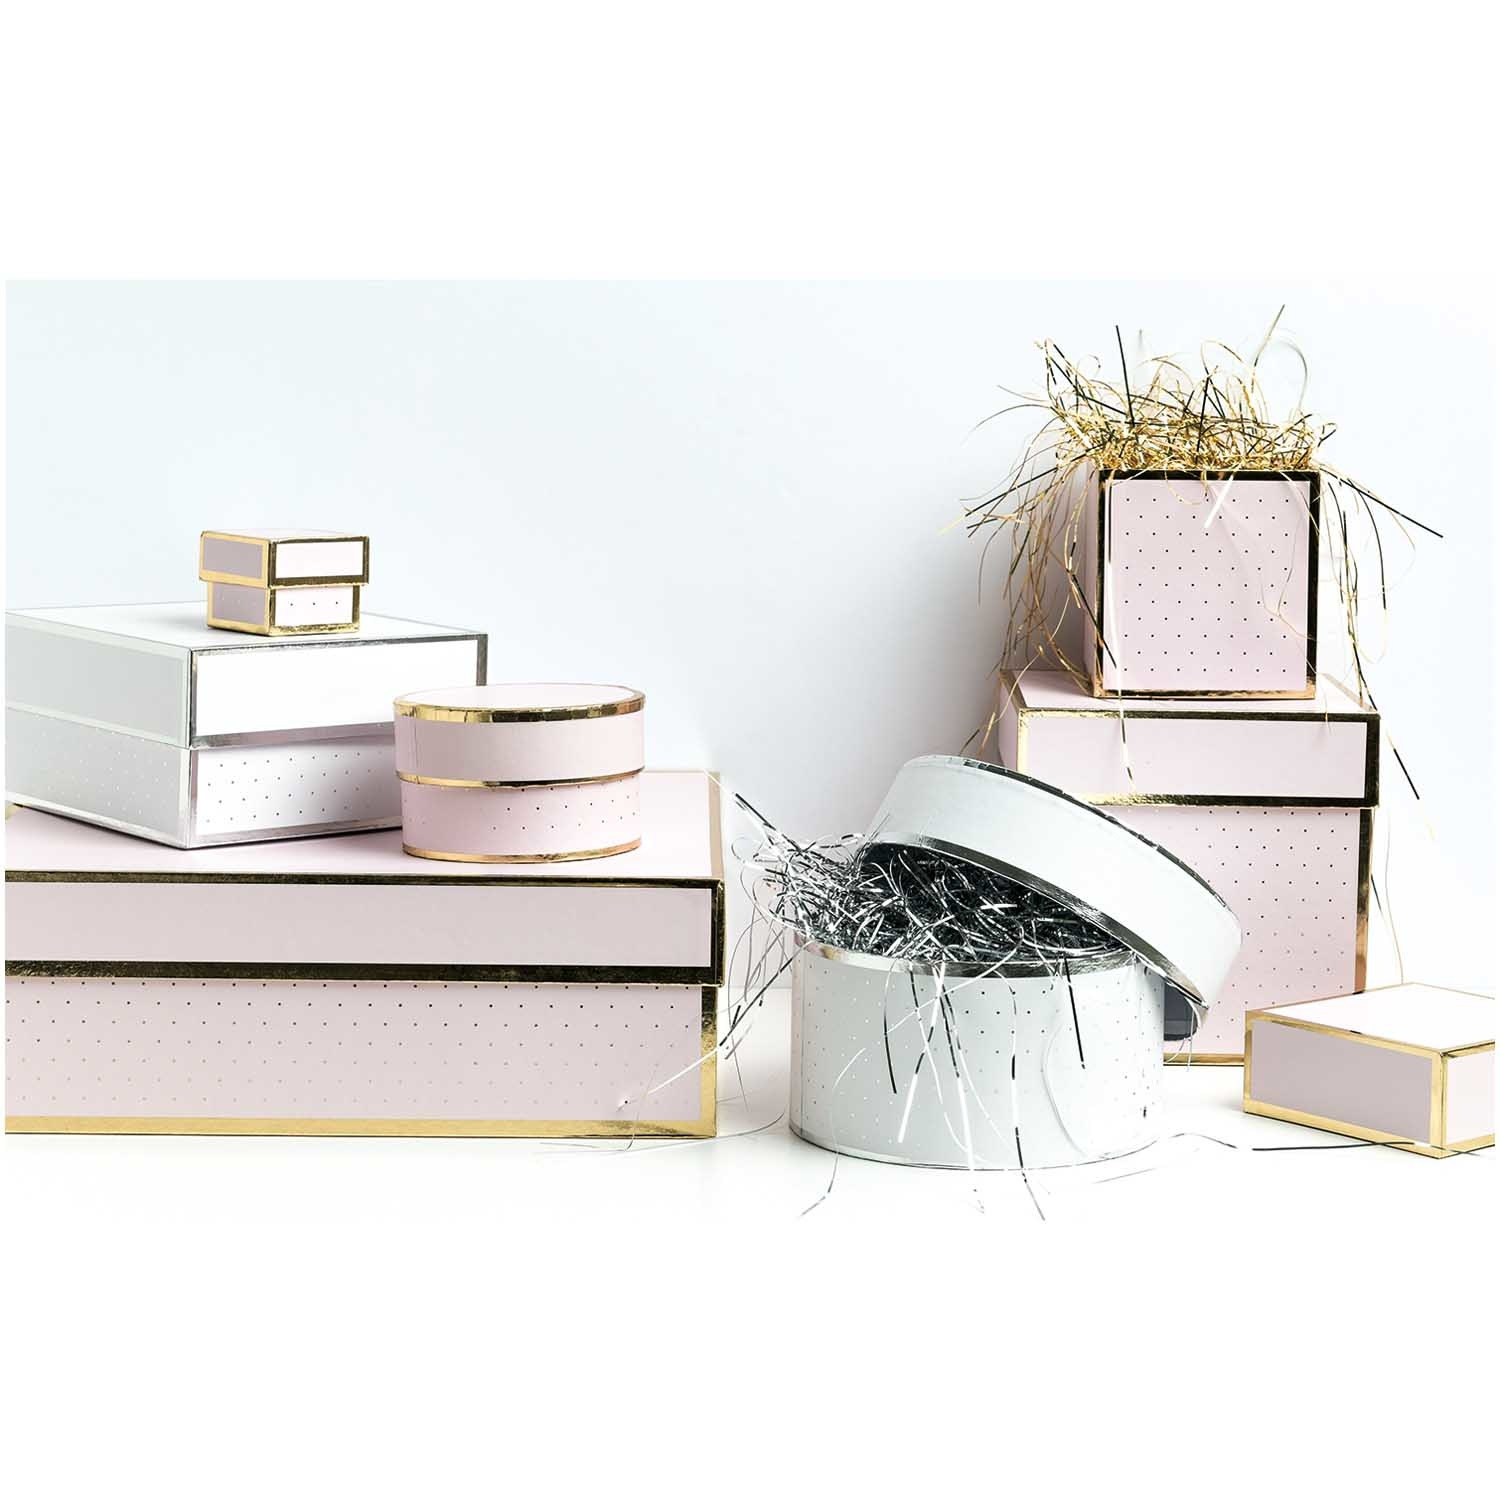 Rico NAY GIFT BOX, PINK, SQUARE, FSC RECYCLED